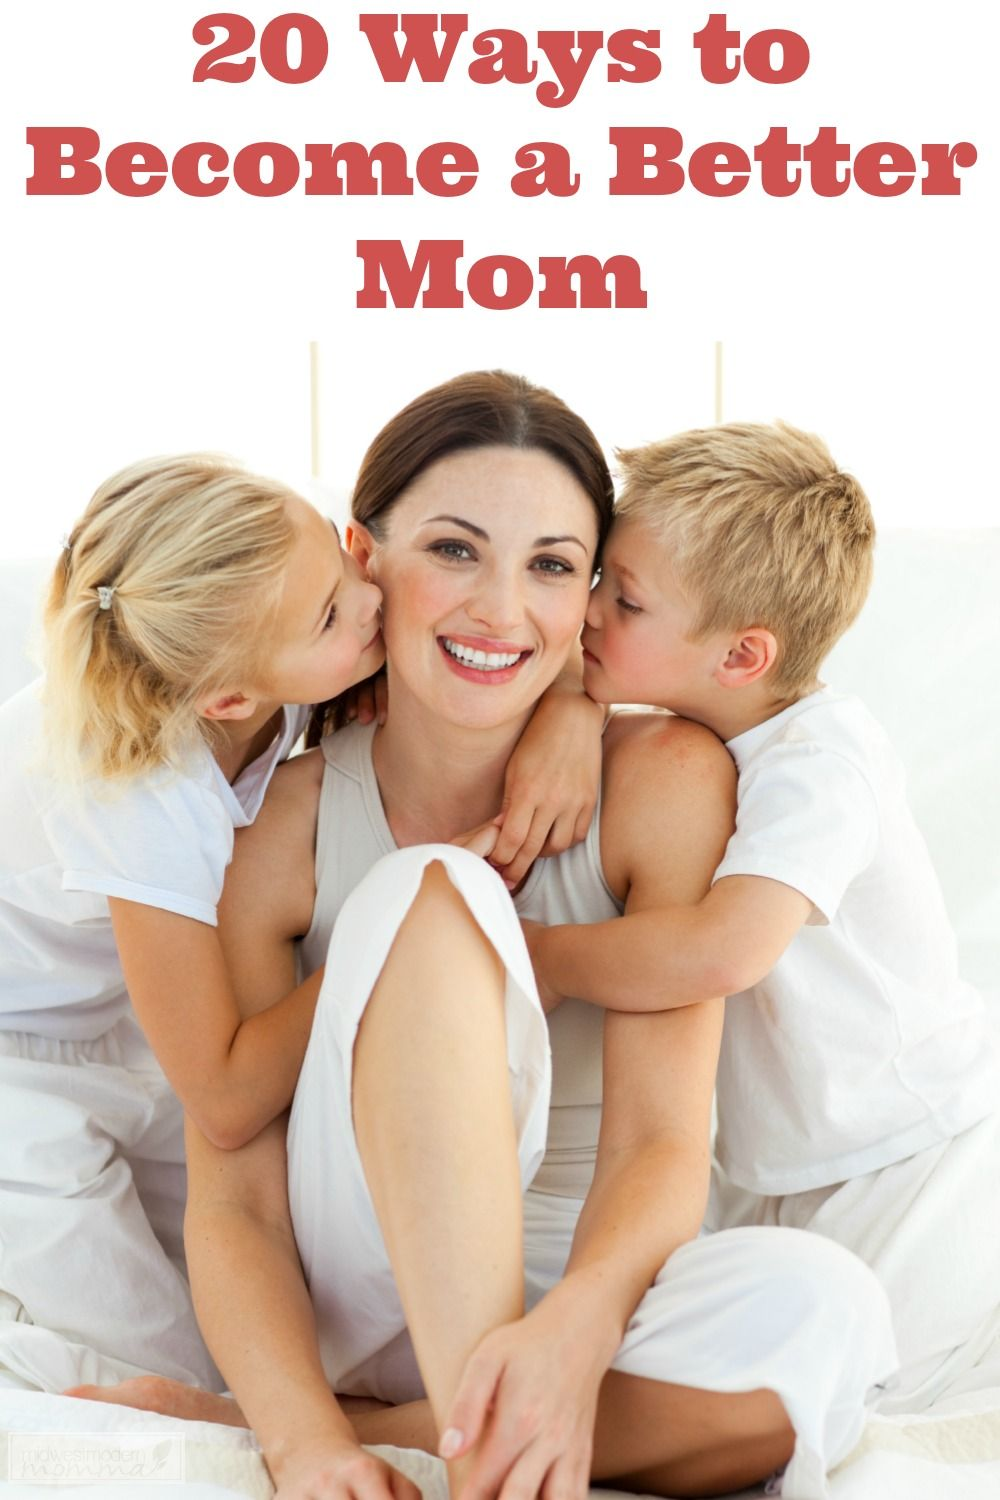 As moms we are always striving to be better in every way. While perfection isn't an attainable goal, there's nothing wrong with trying to be a better mom. One of my goals for 2016 is just to be a better mom overall and I thought I'd share 20 areas we can all work on to be a better mom (and let go of the SuperMom expectations)!